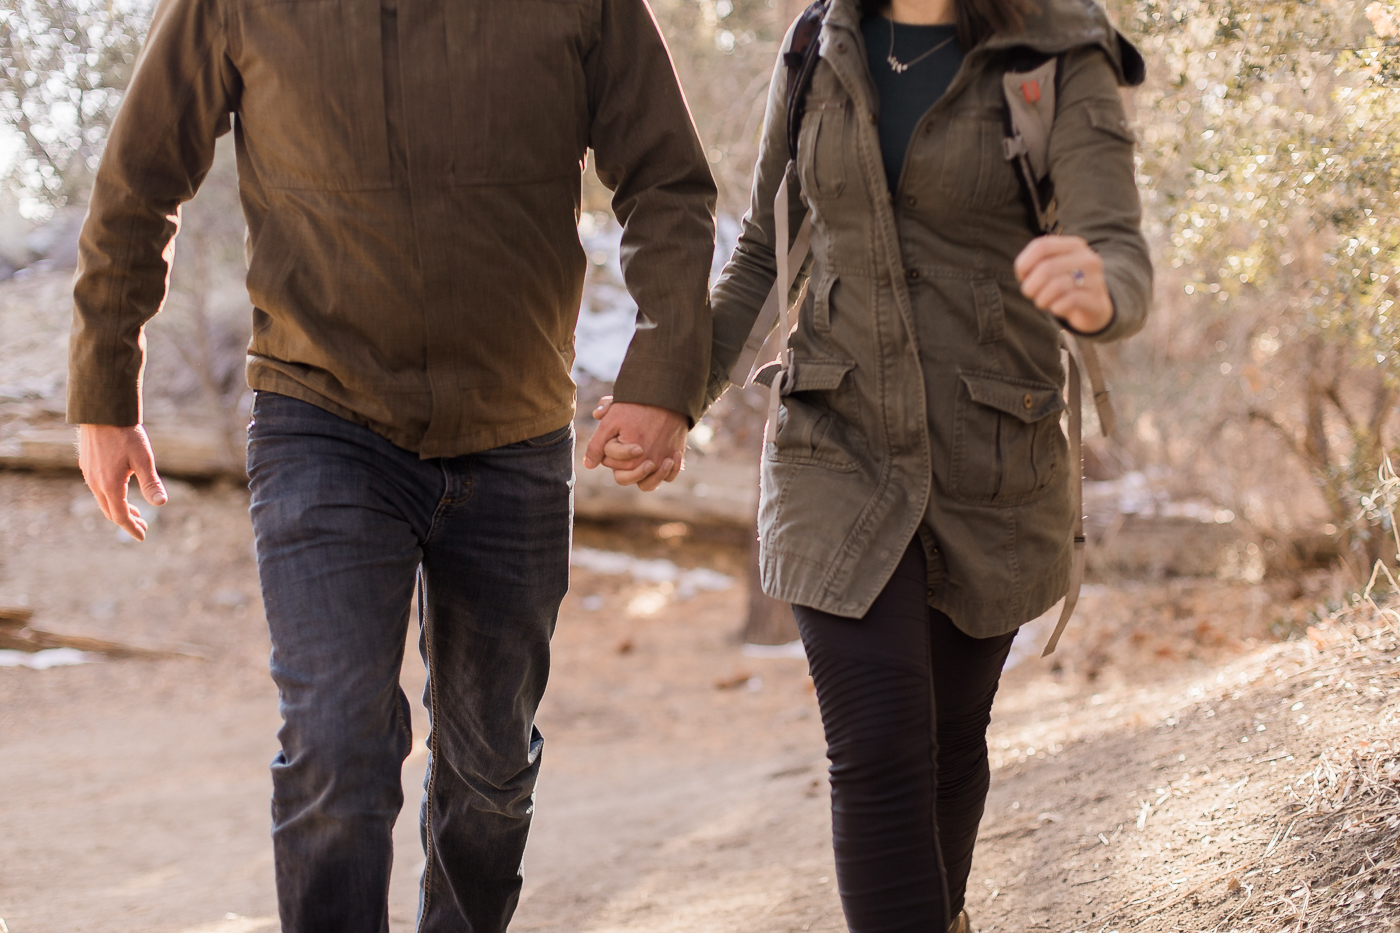 Big Bear engagement session by Megan Lee Photography